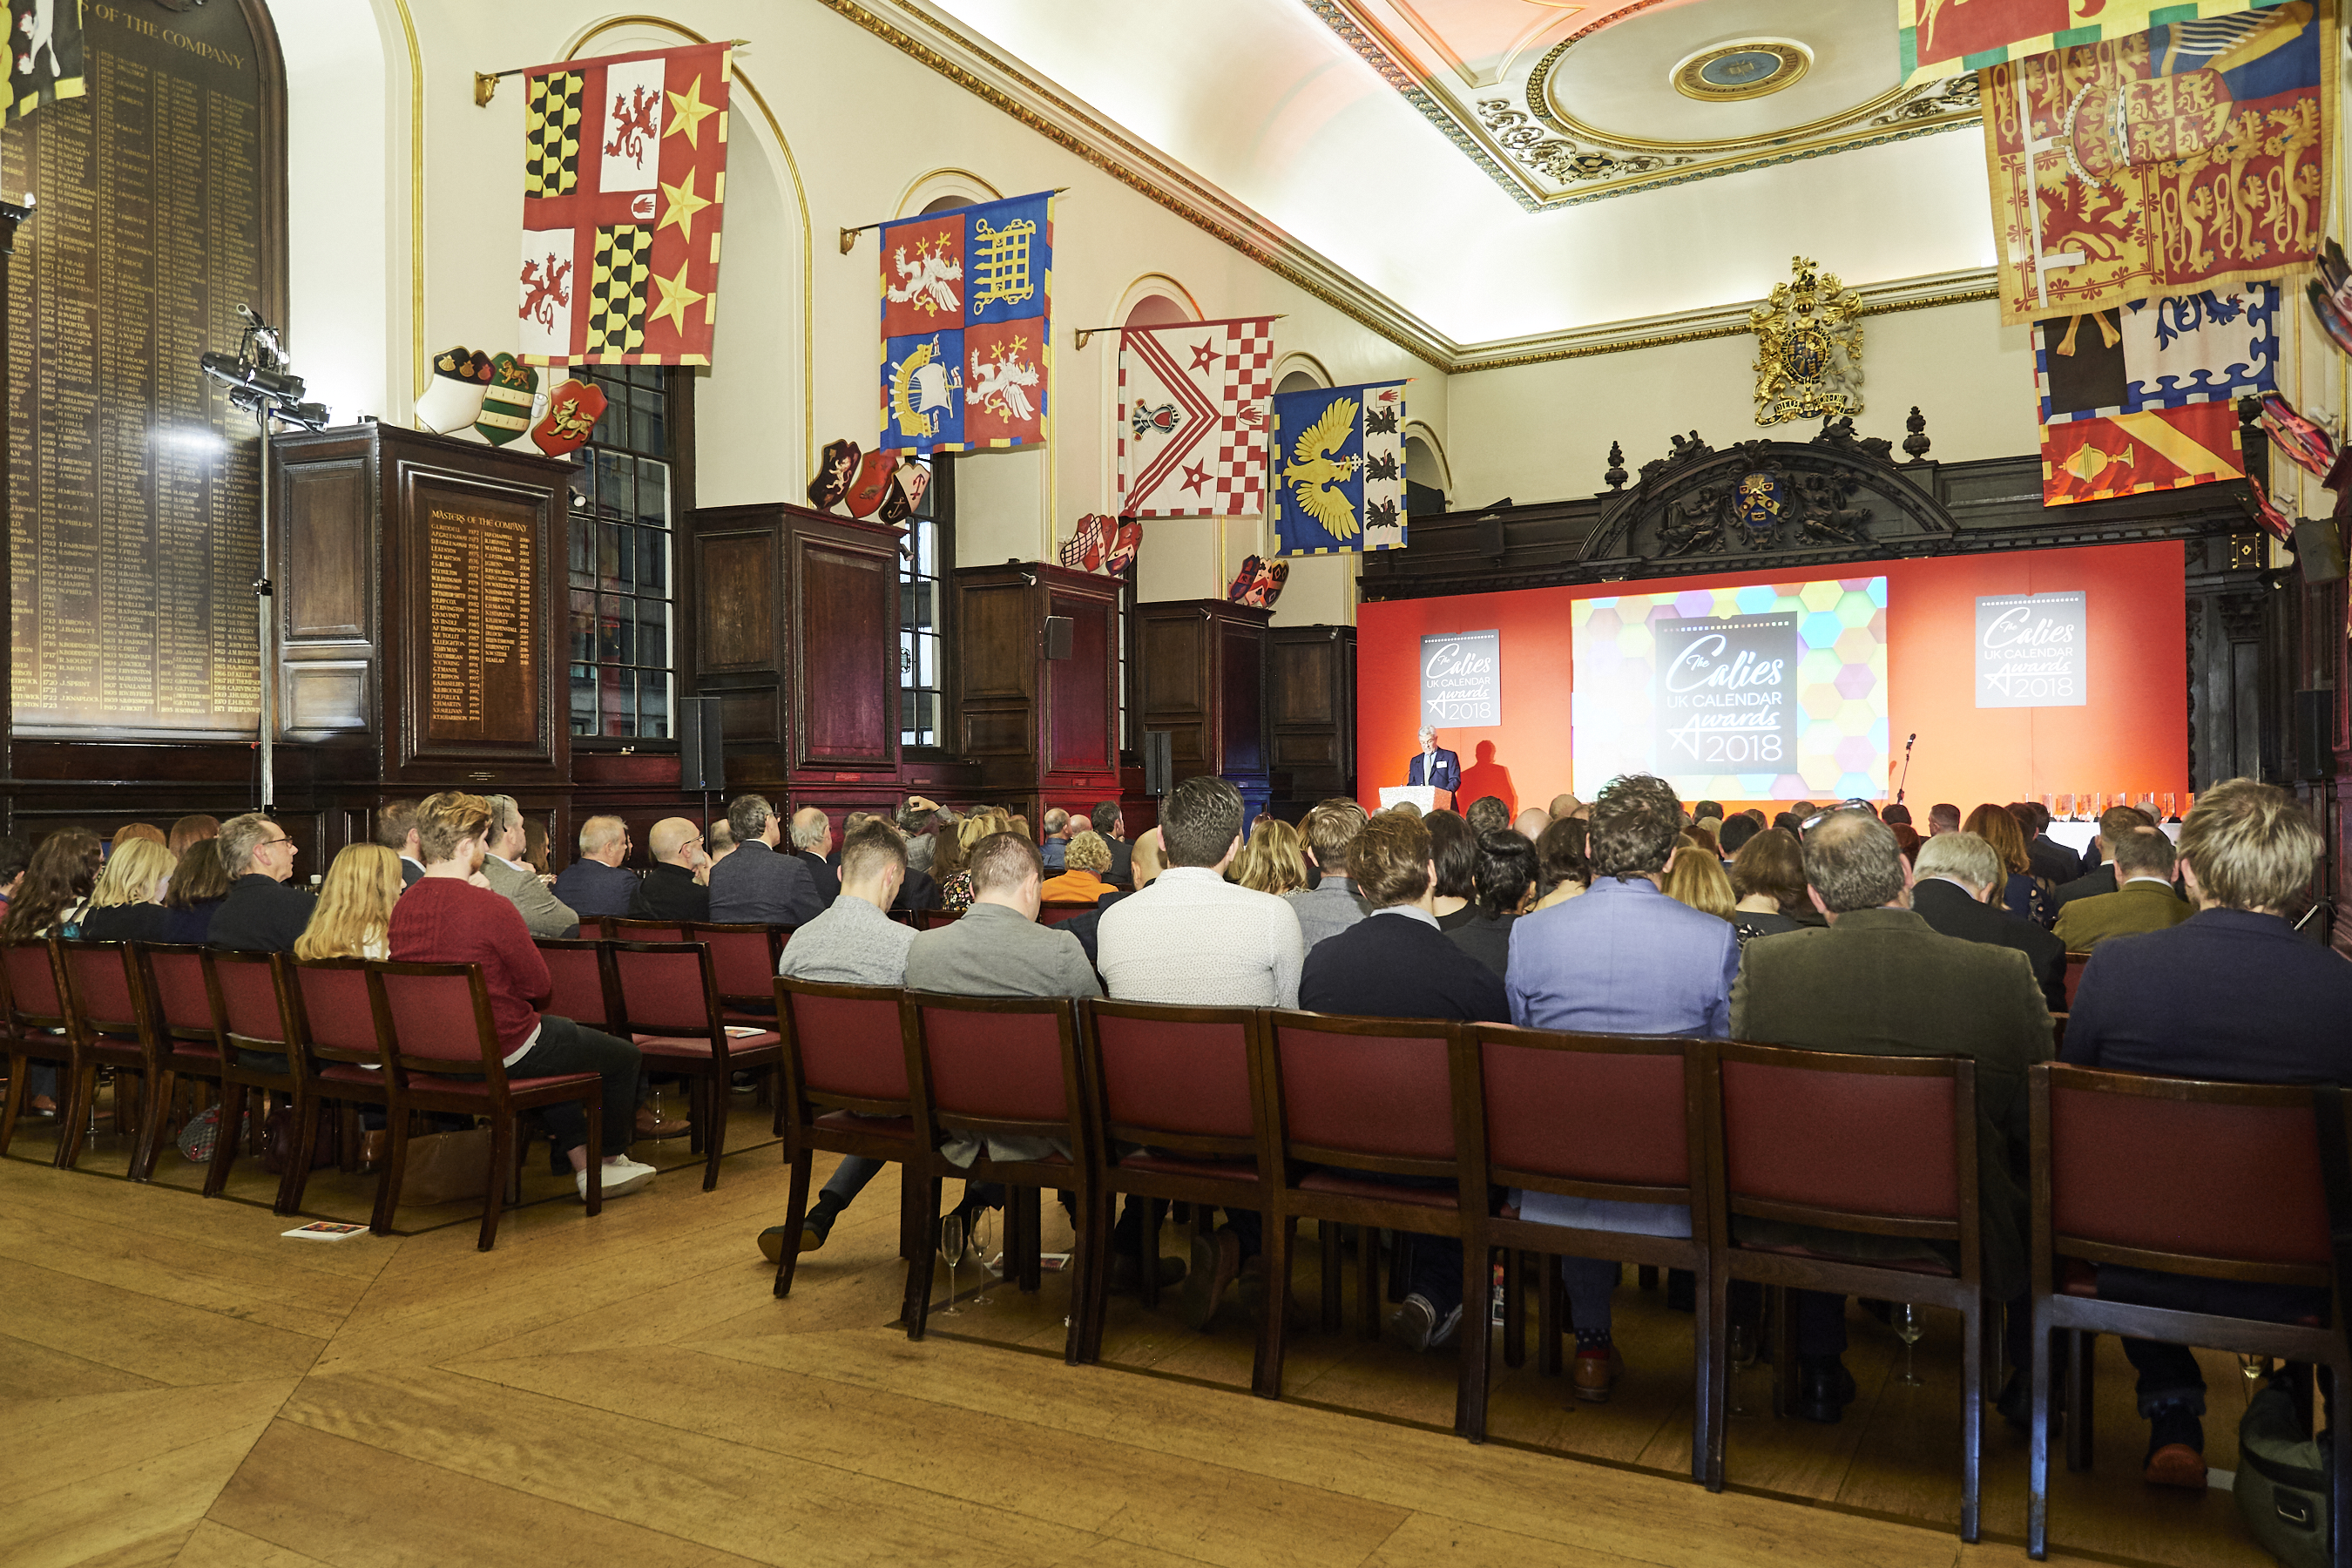 Above: The Calies 2019 will once again take place at Stationers' Hall.